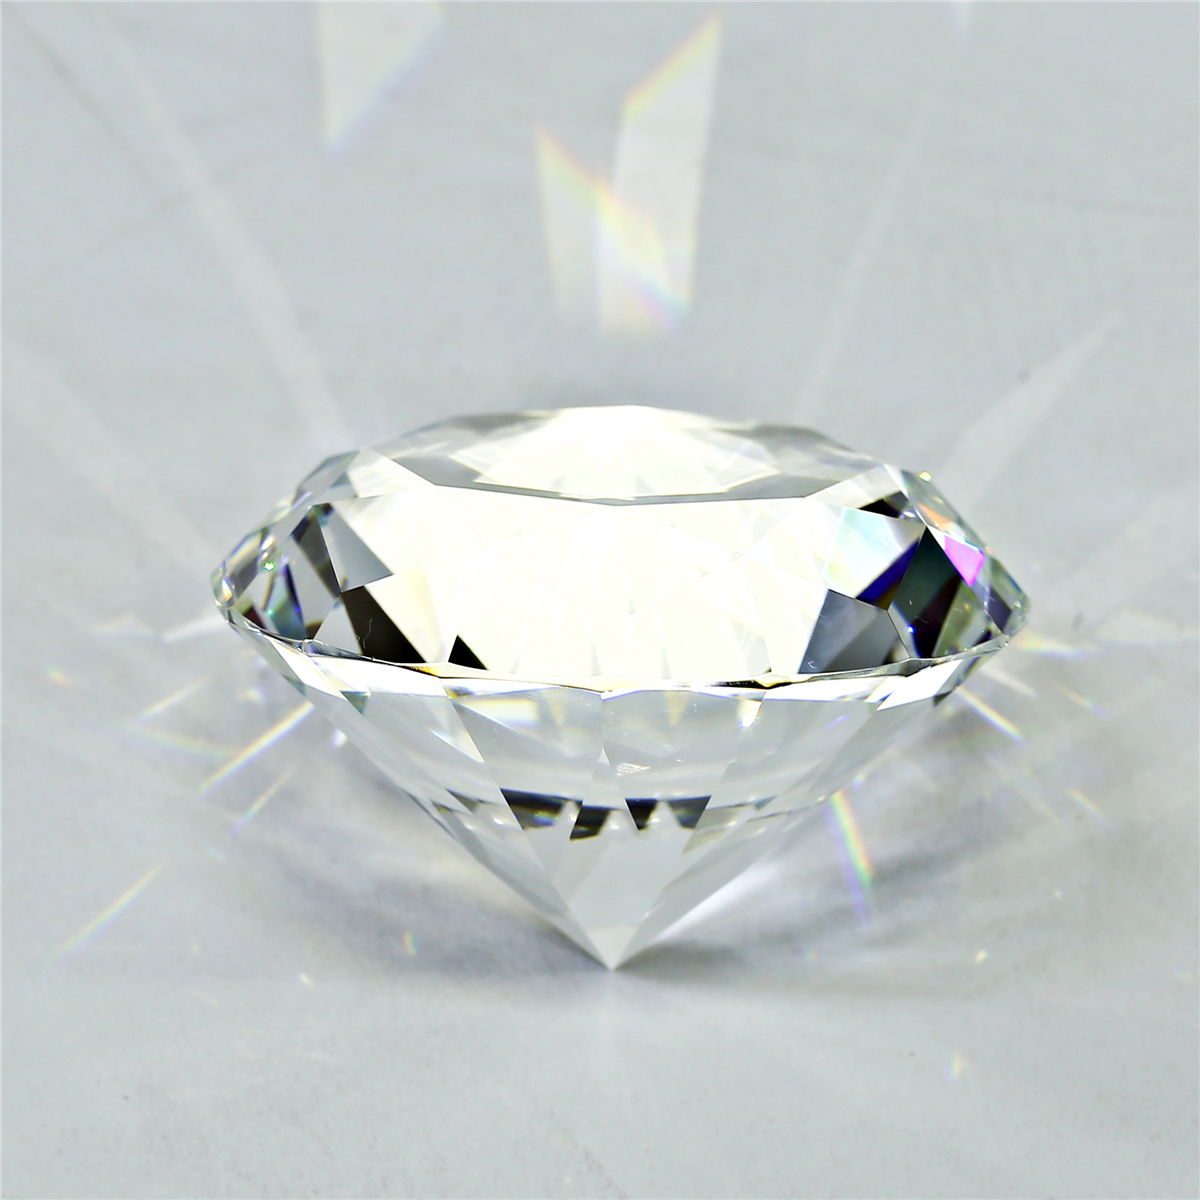 60mm Big K9 Crystal Clear Diamond Glass Art Paperweight Decorations Ornament Creative Gifts